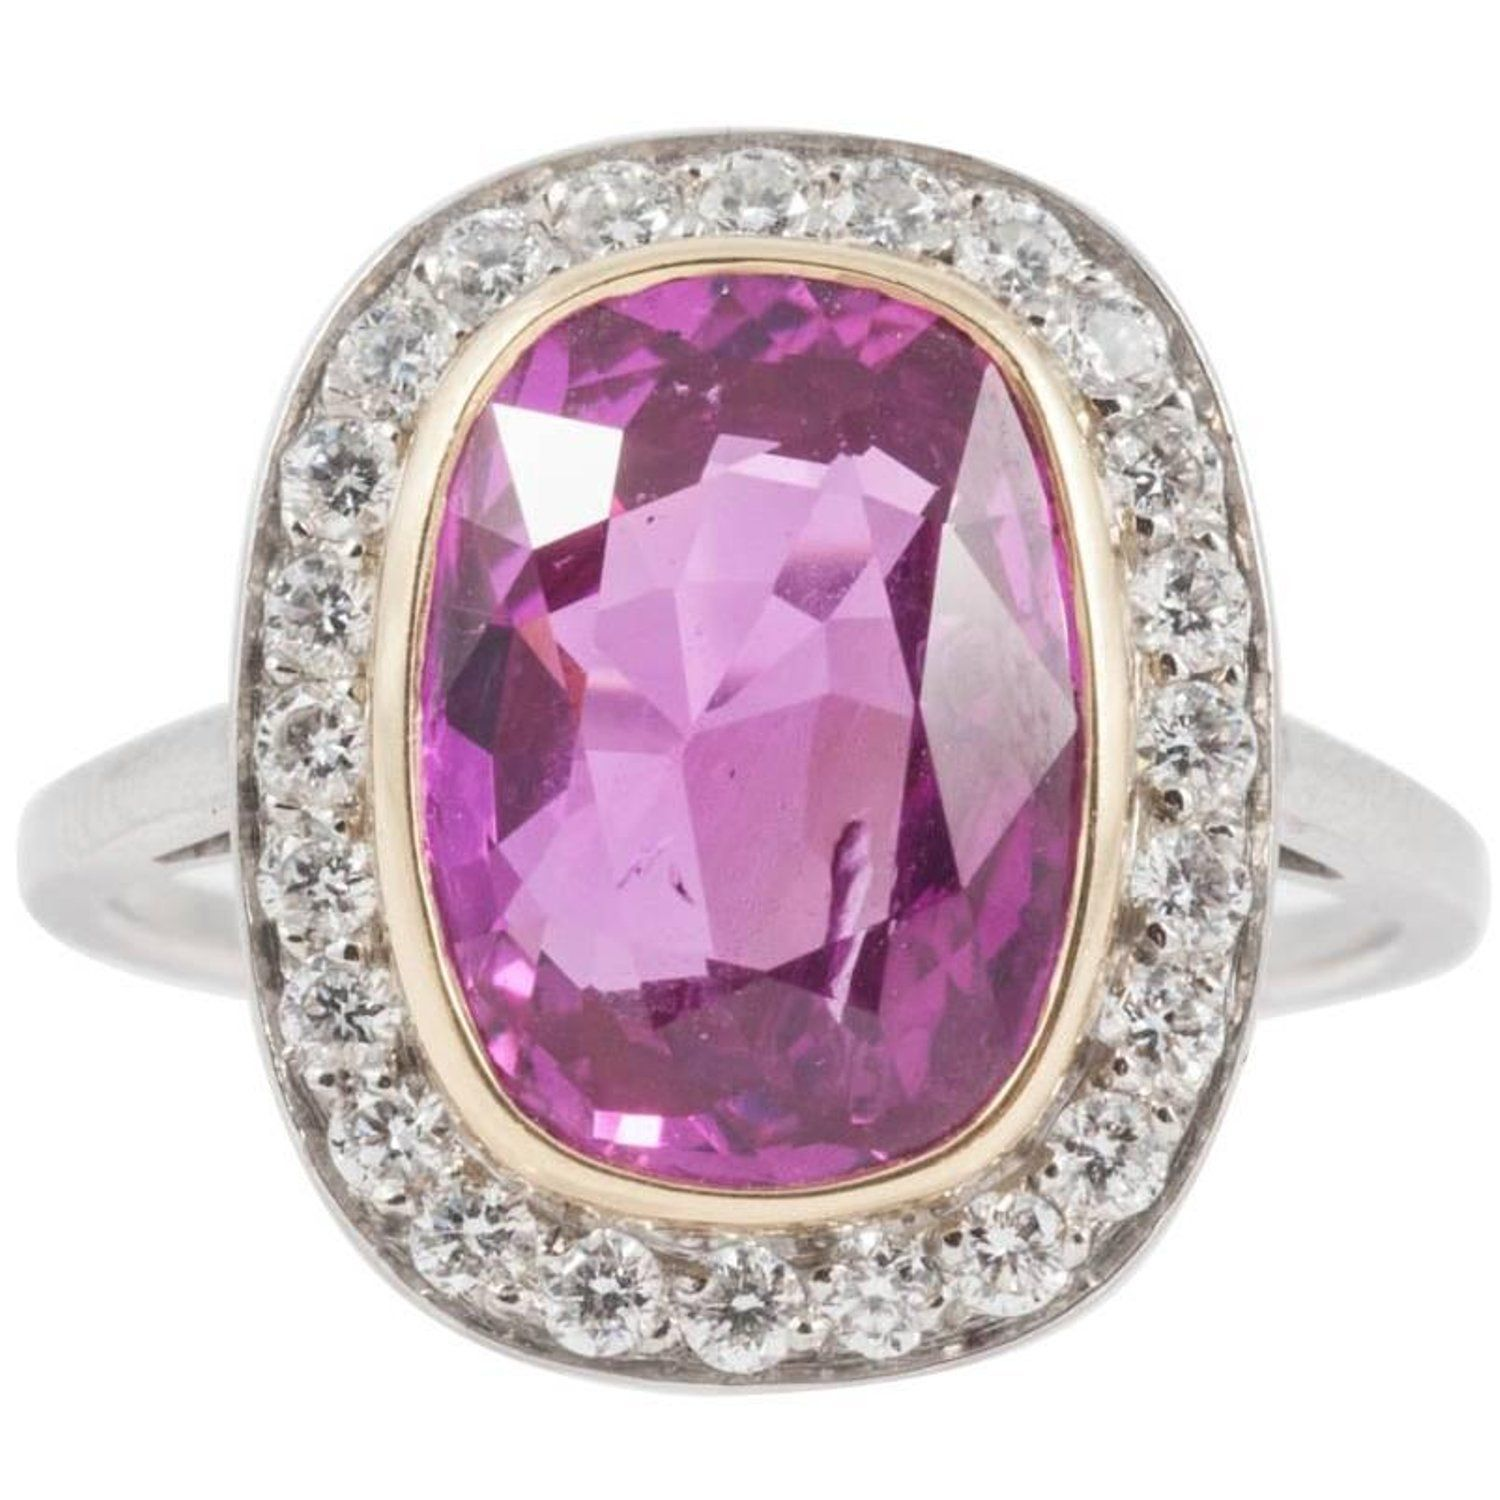 Natural No Heat 4.31 Carat Pink Sapphire Diamond Ring | jewelry ...